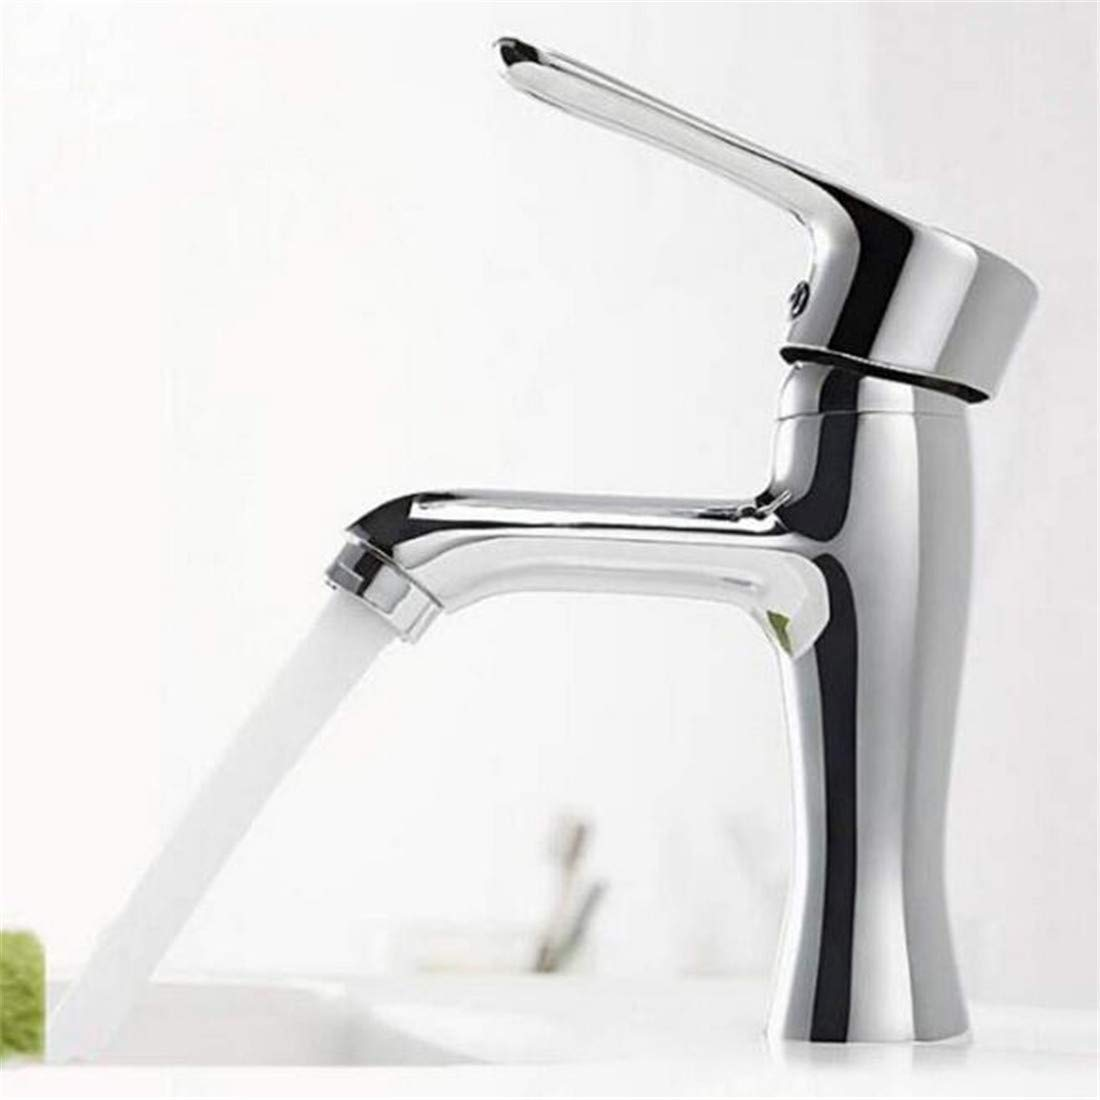 Chrome Kitchen Sink Tapmodern Bathroom Products Chrome Finished Hot and Cold Water Basin Faucet Mixer Single Handle Water Tap Torneira